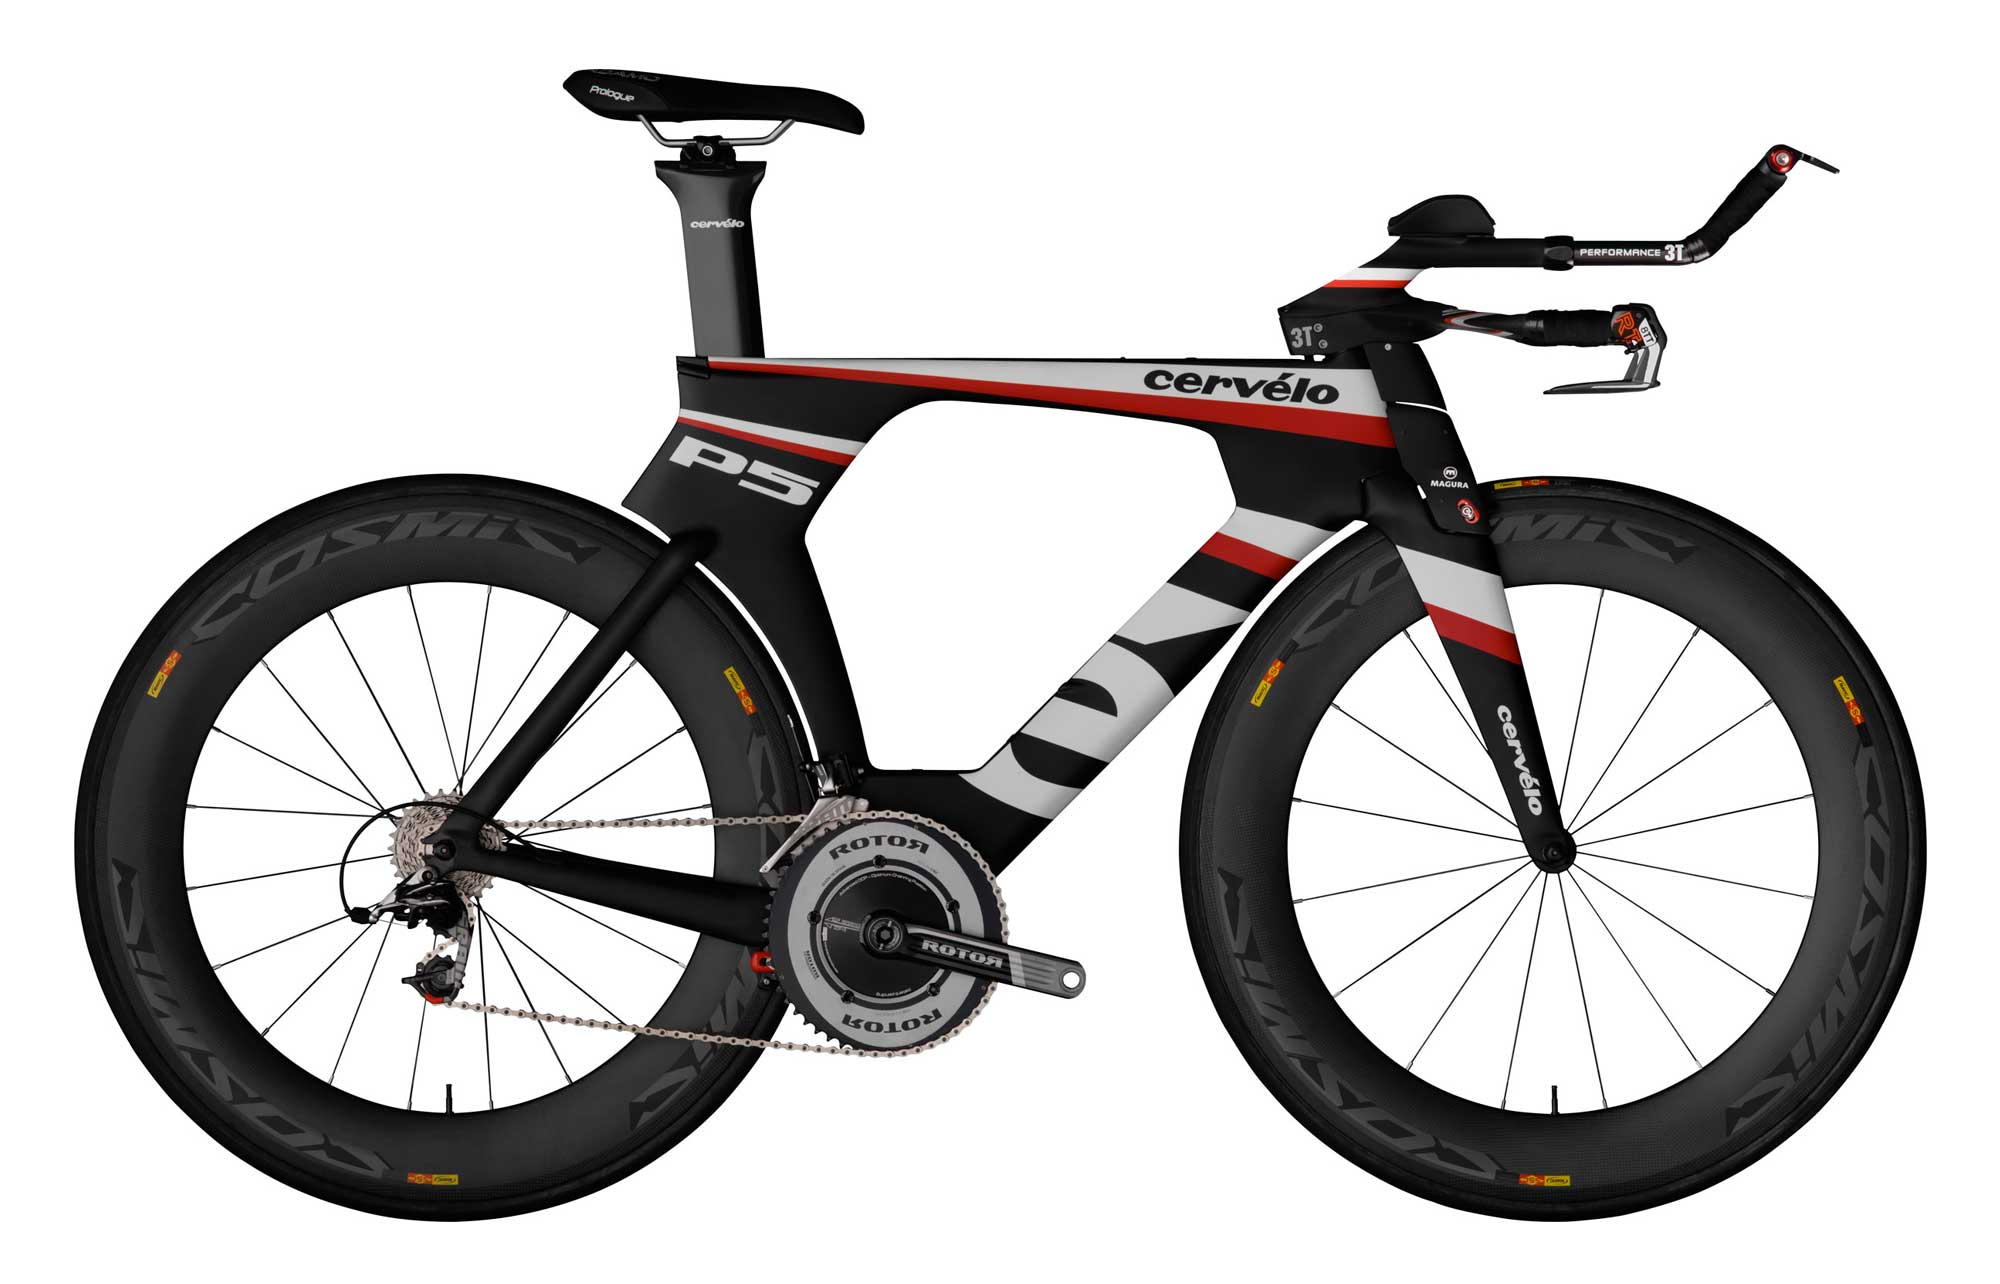 2013 Cervelo P5 Six Dura Ace Di2 Bike R Amp A Cycles